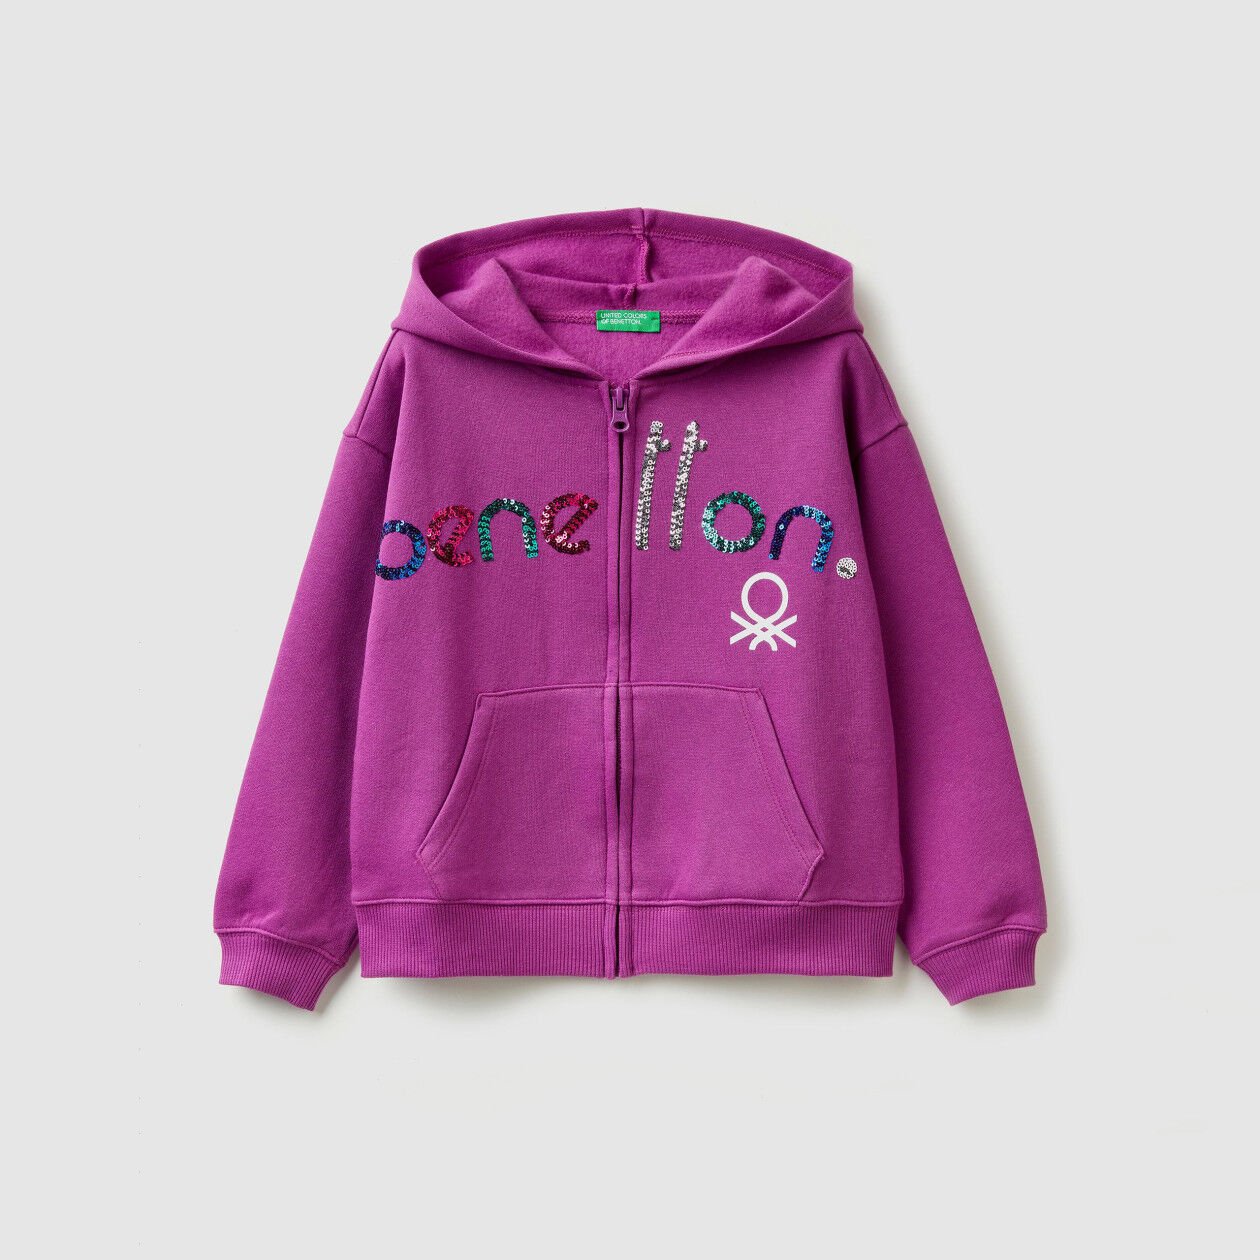 Hoodie with logo